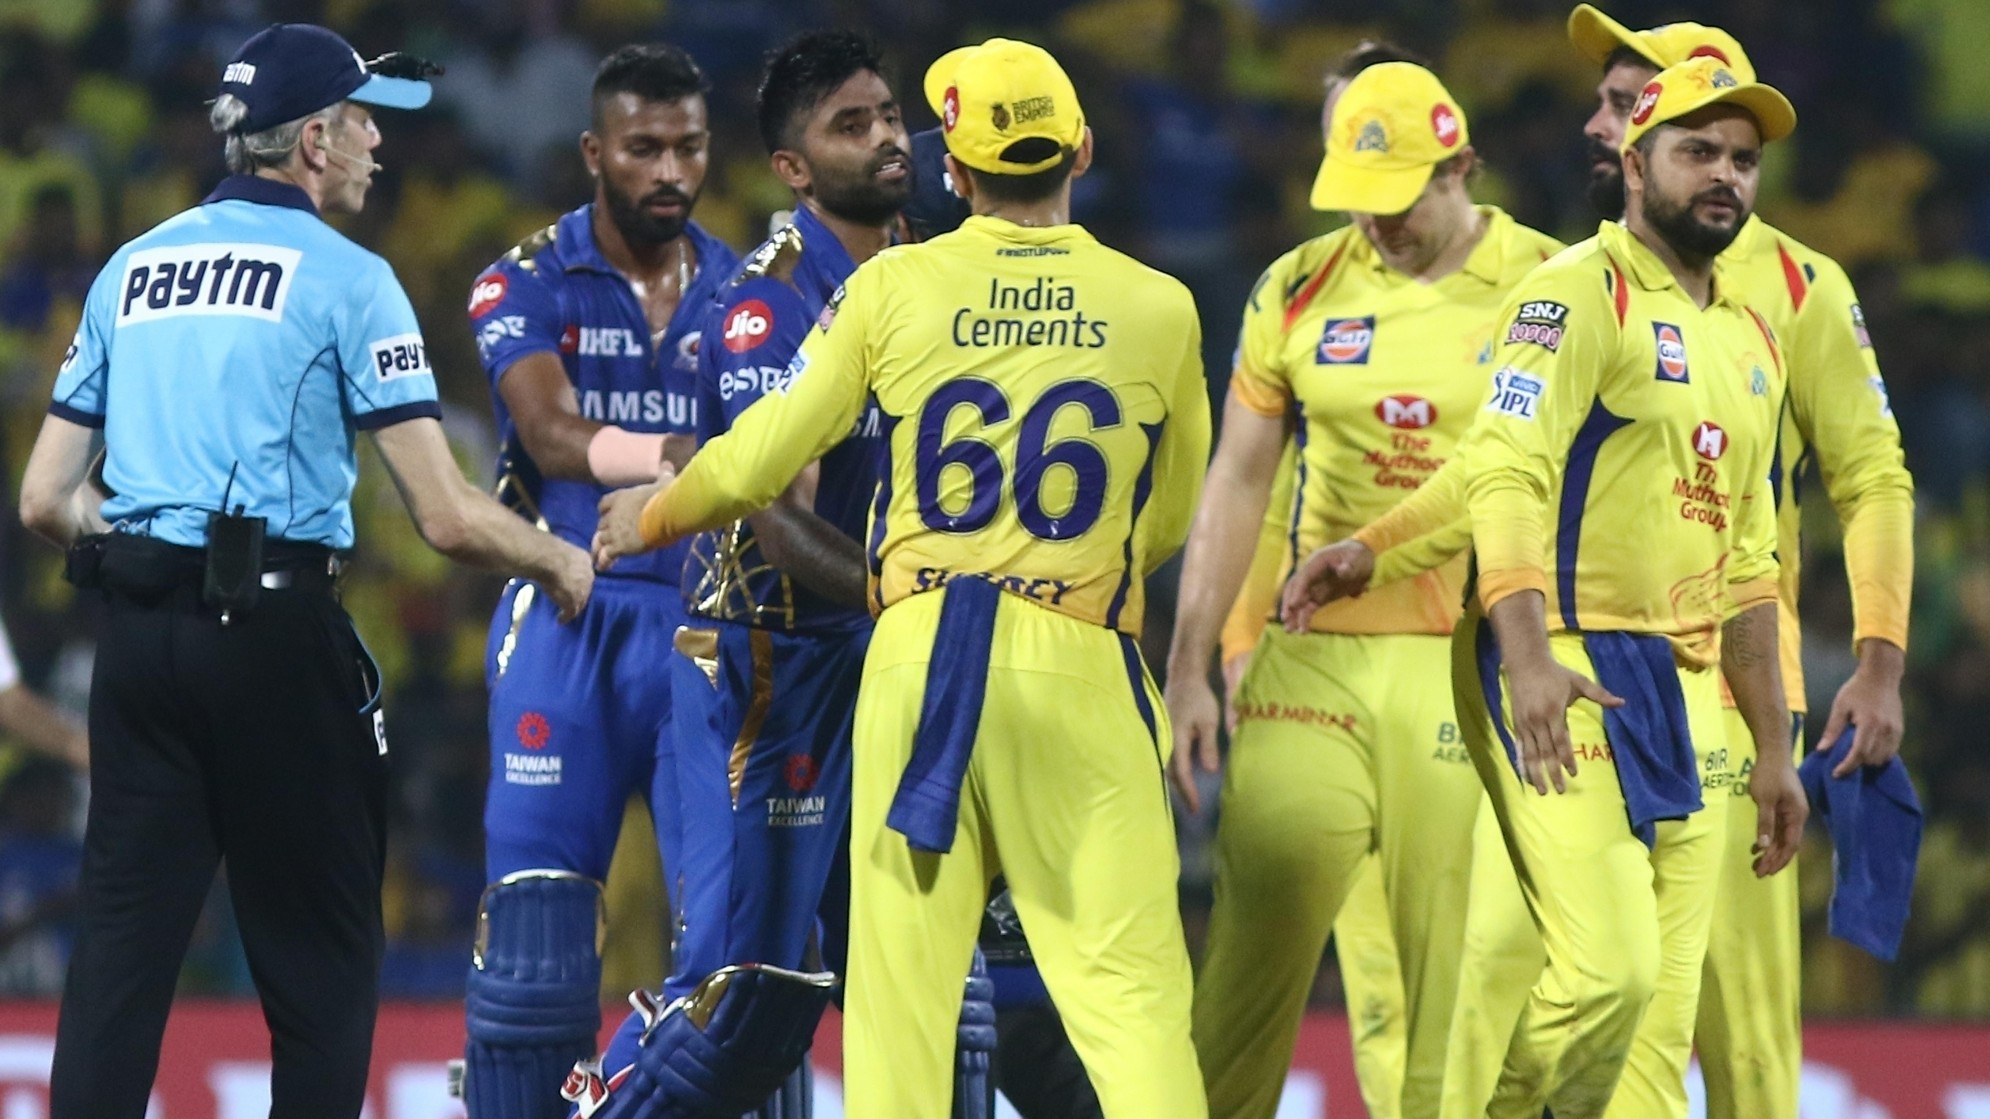 IPL 2020: Governing Council asks franchises to leave for UAE by August 20, claims report